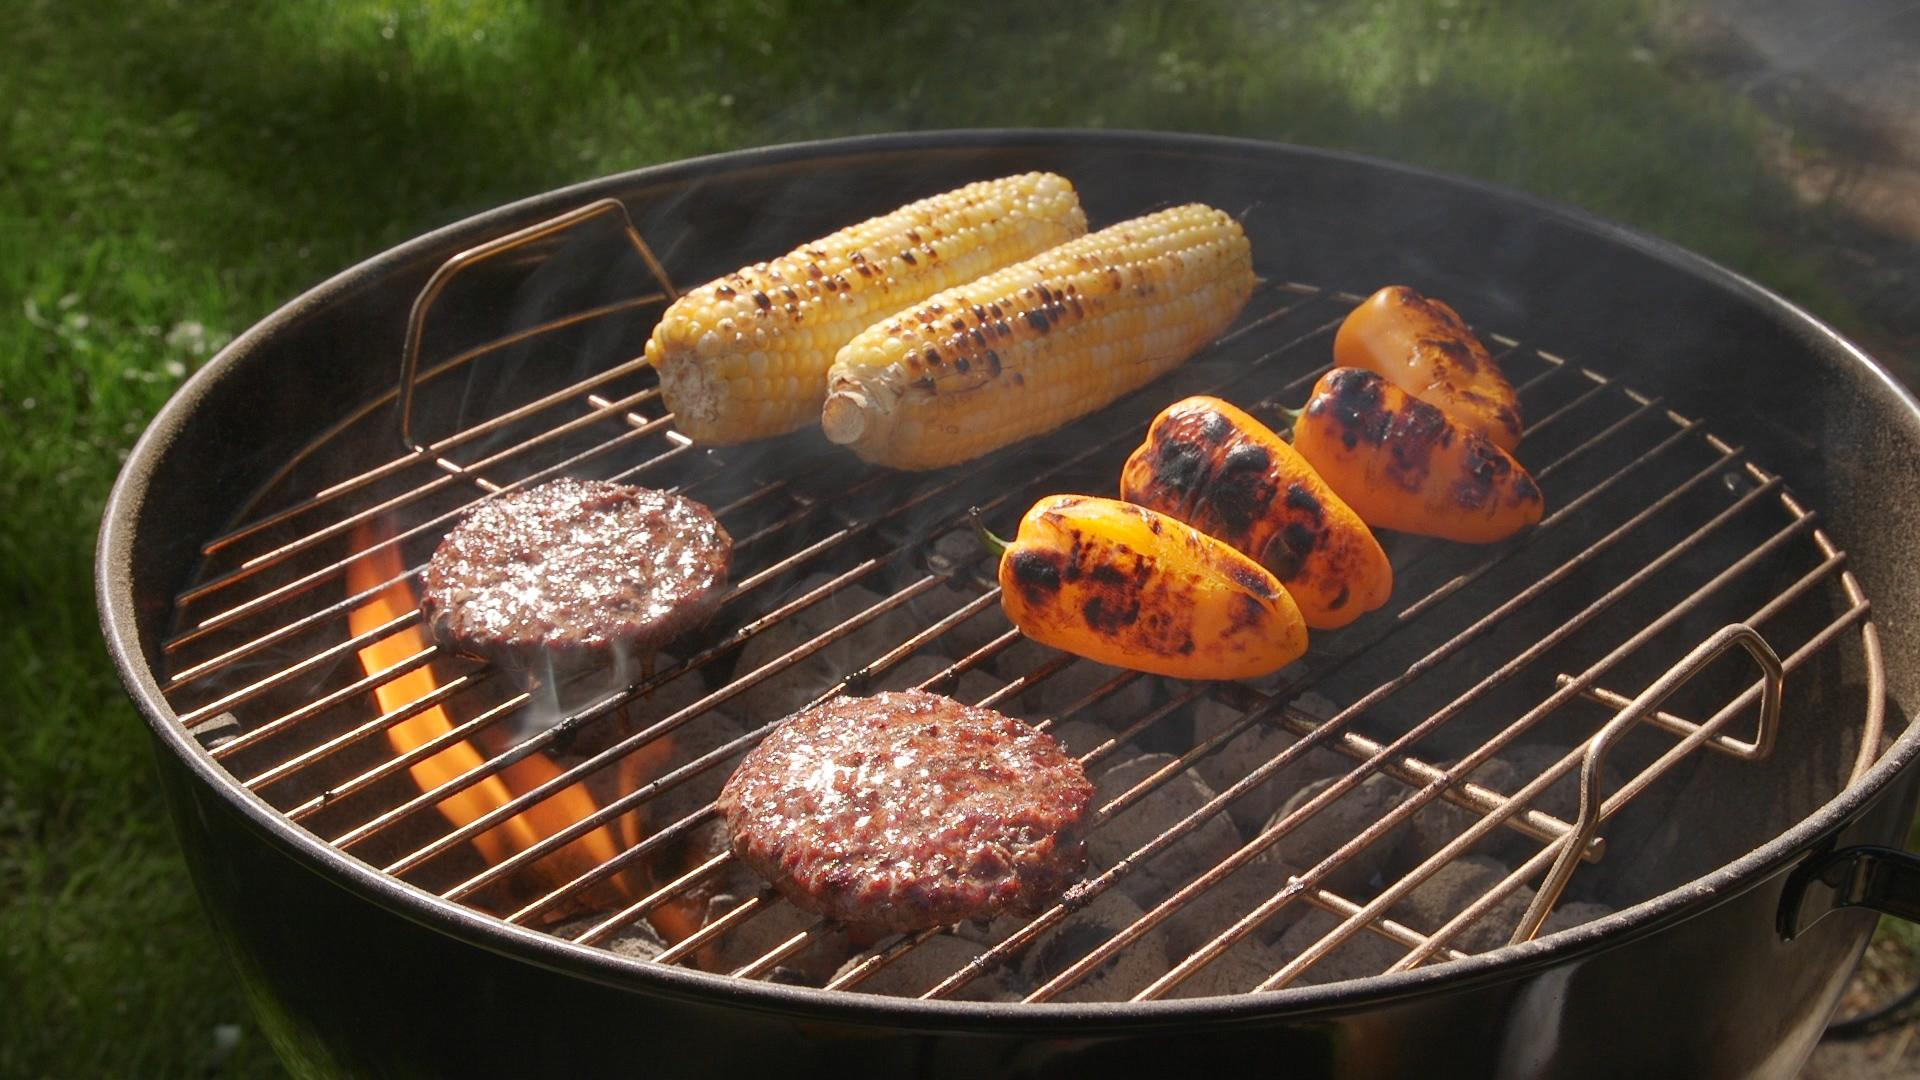 How To Cook On A Charcoal Grill Consumer Reports,Stainless Steel Vs Nonstick Pressure Cooker